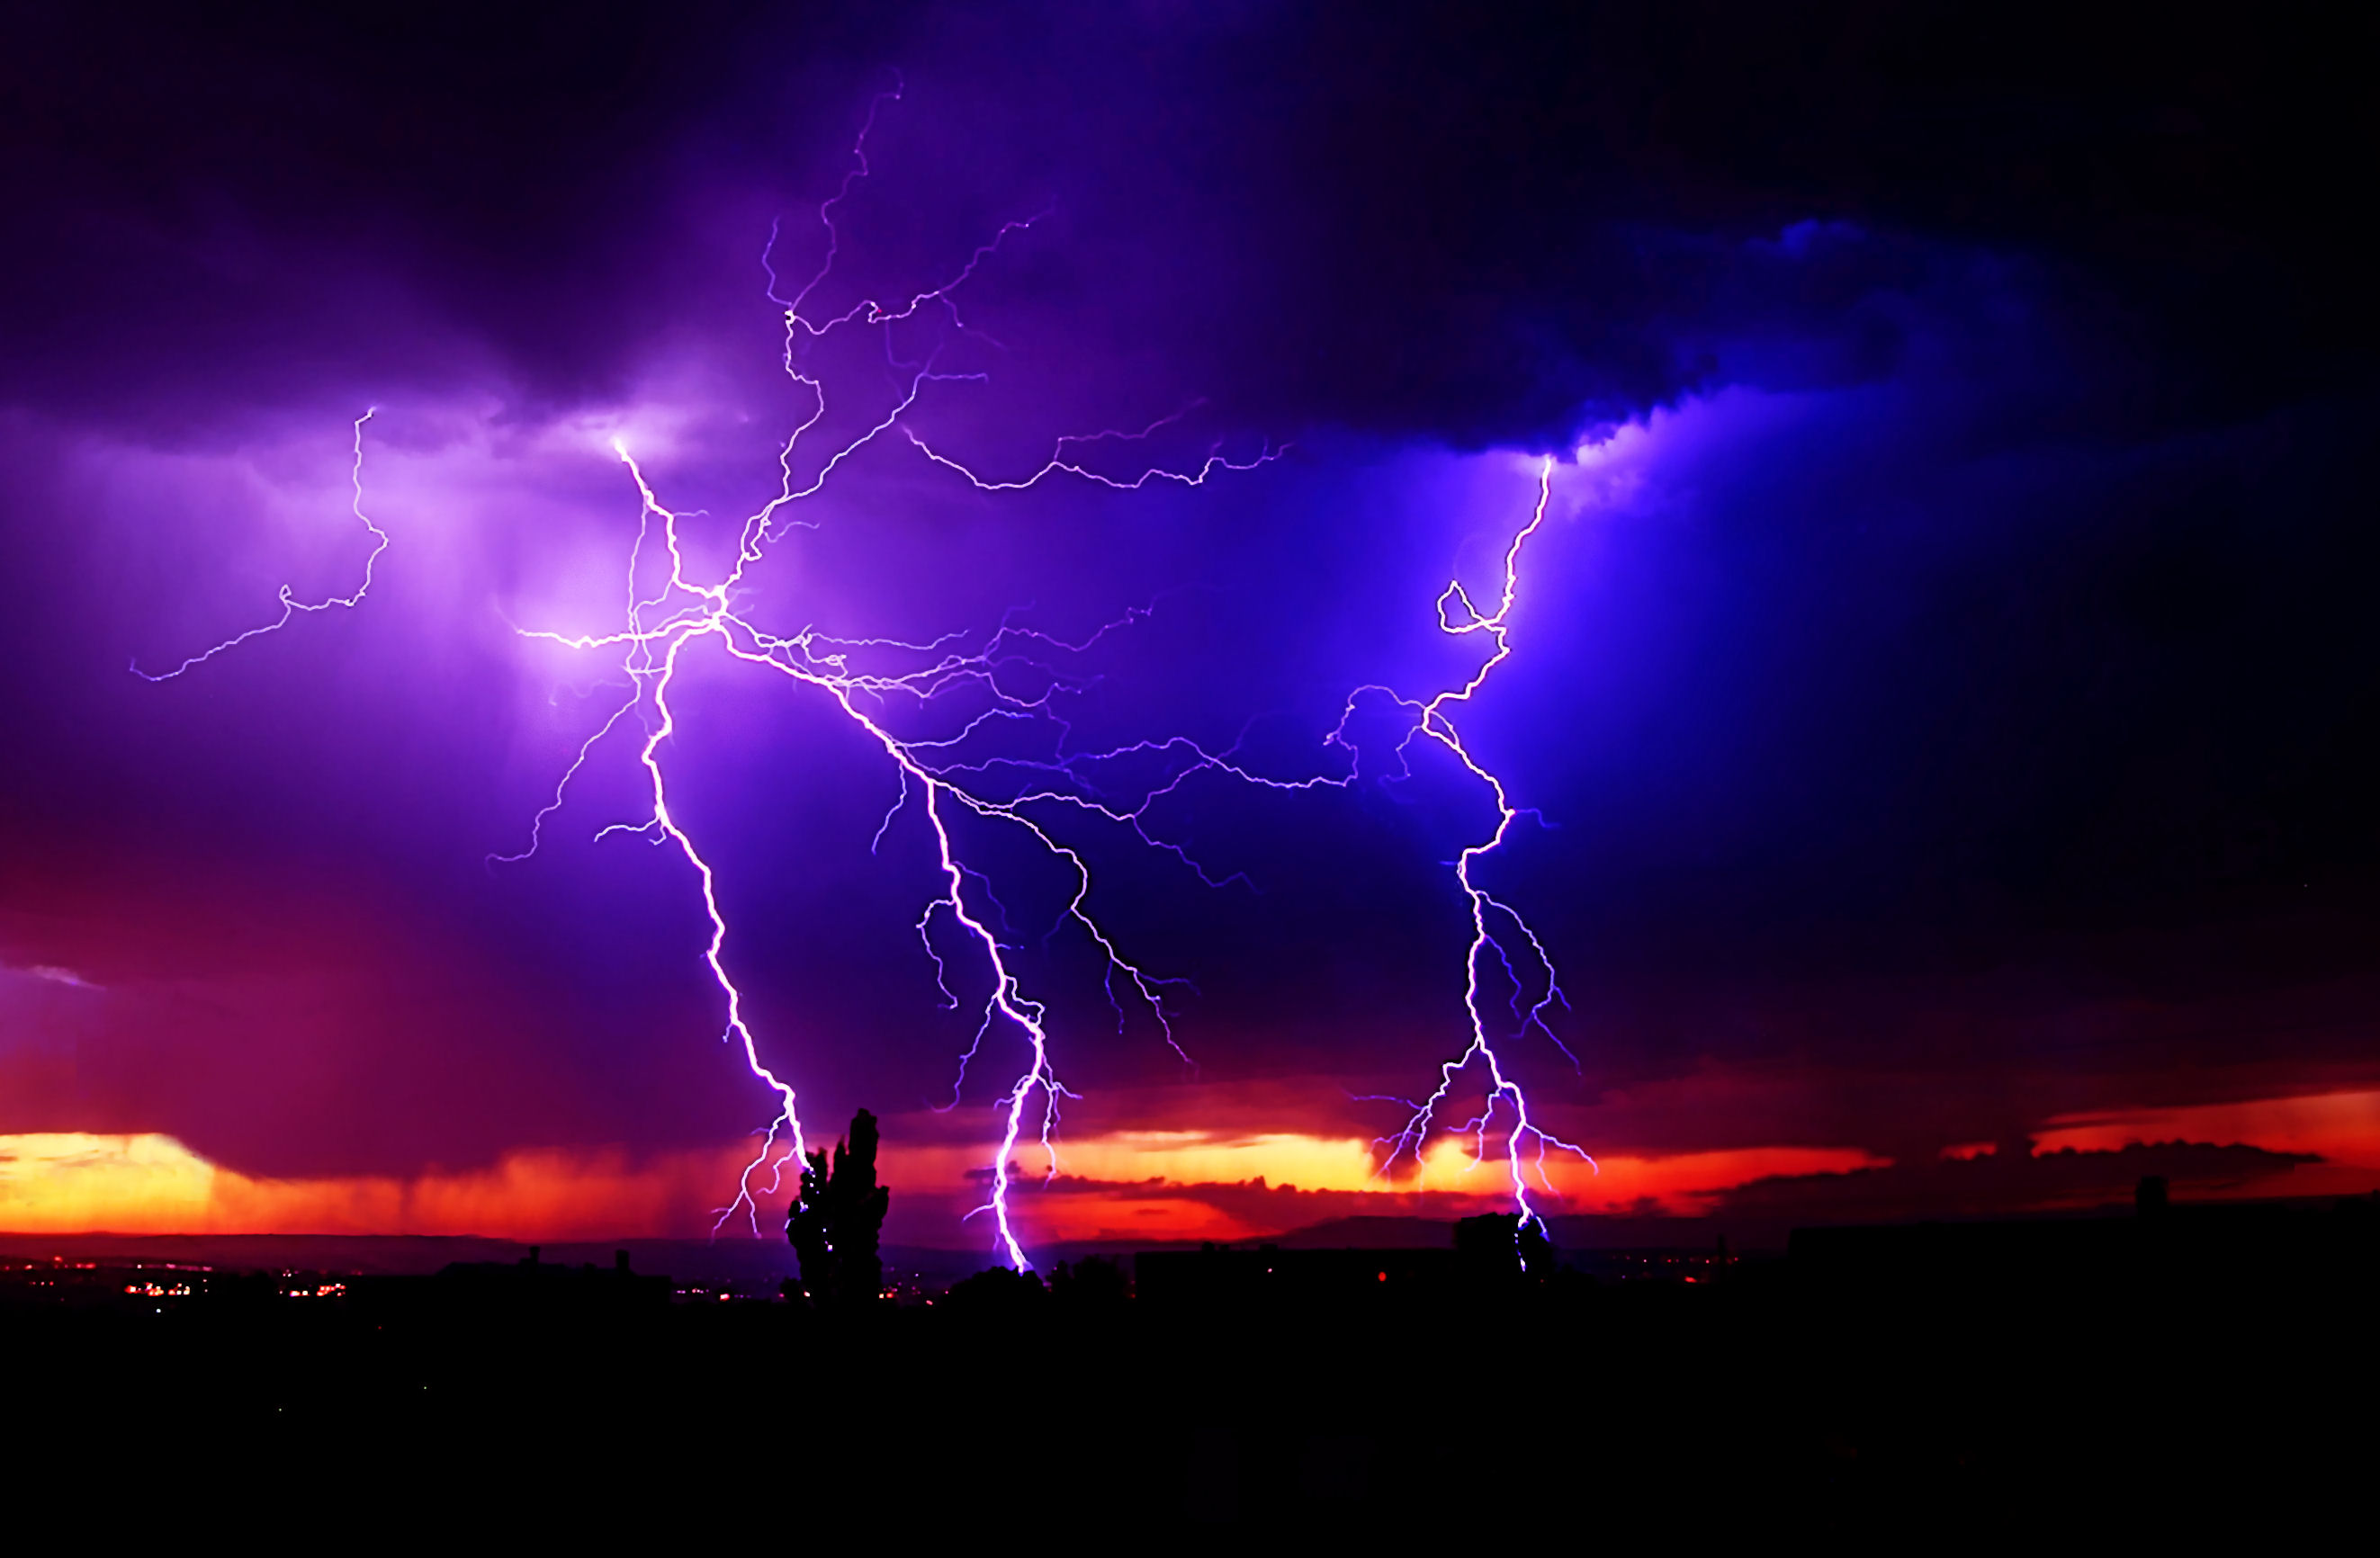 Lightning Storms for your Desktop Wallpaper Thomas Craig Consulting 2645x1732